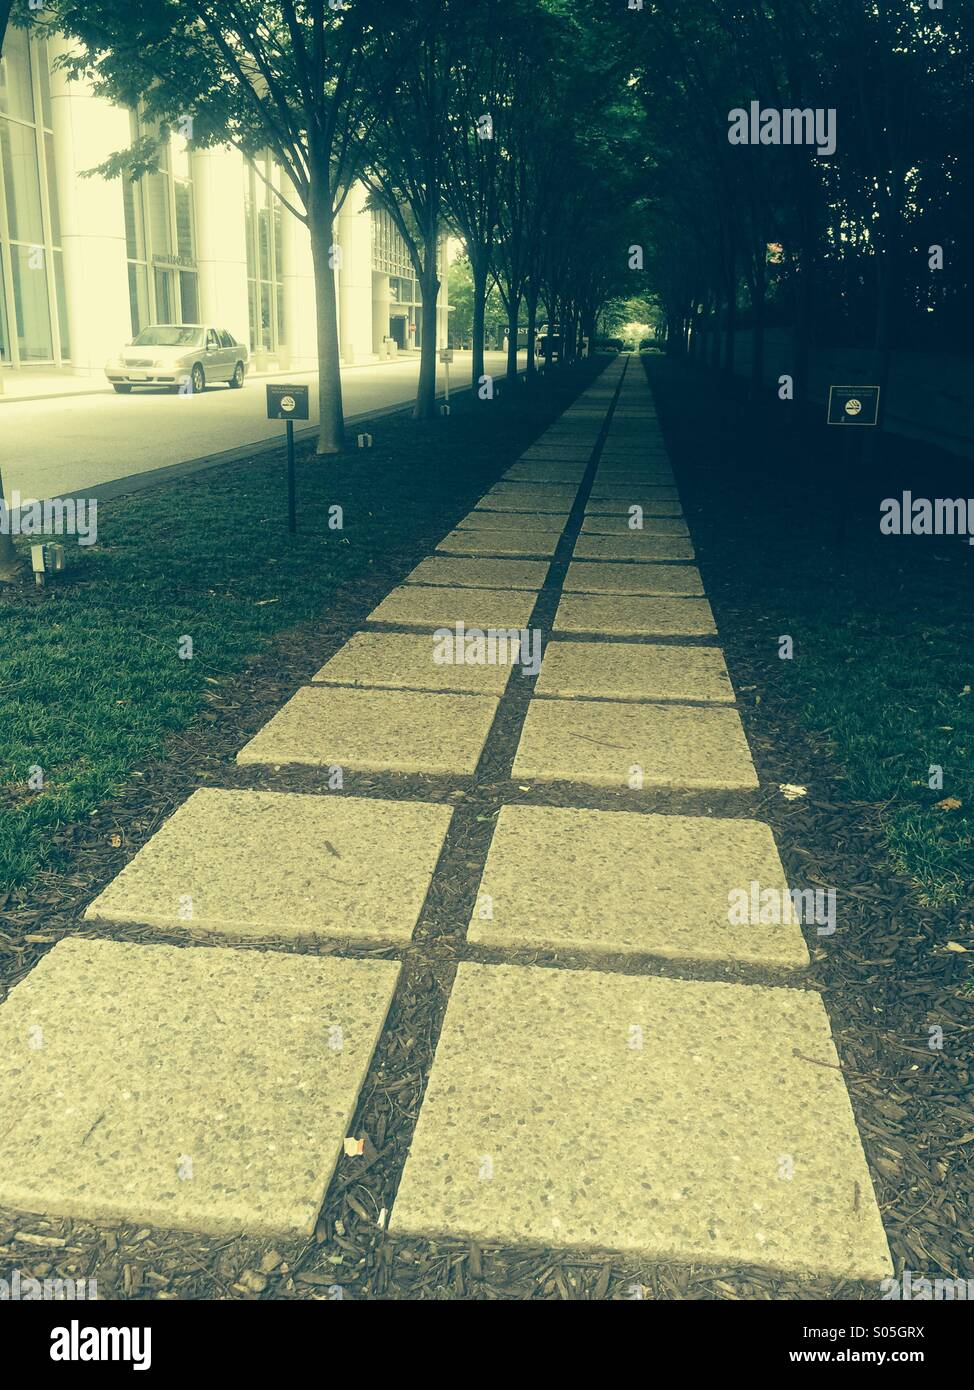 Pathway off Peachtree a Street in Midtown Atlanta, Georgia. - Stock Image